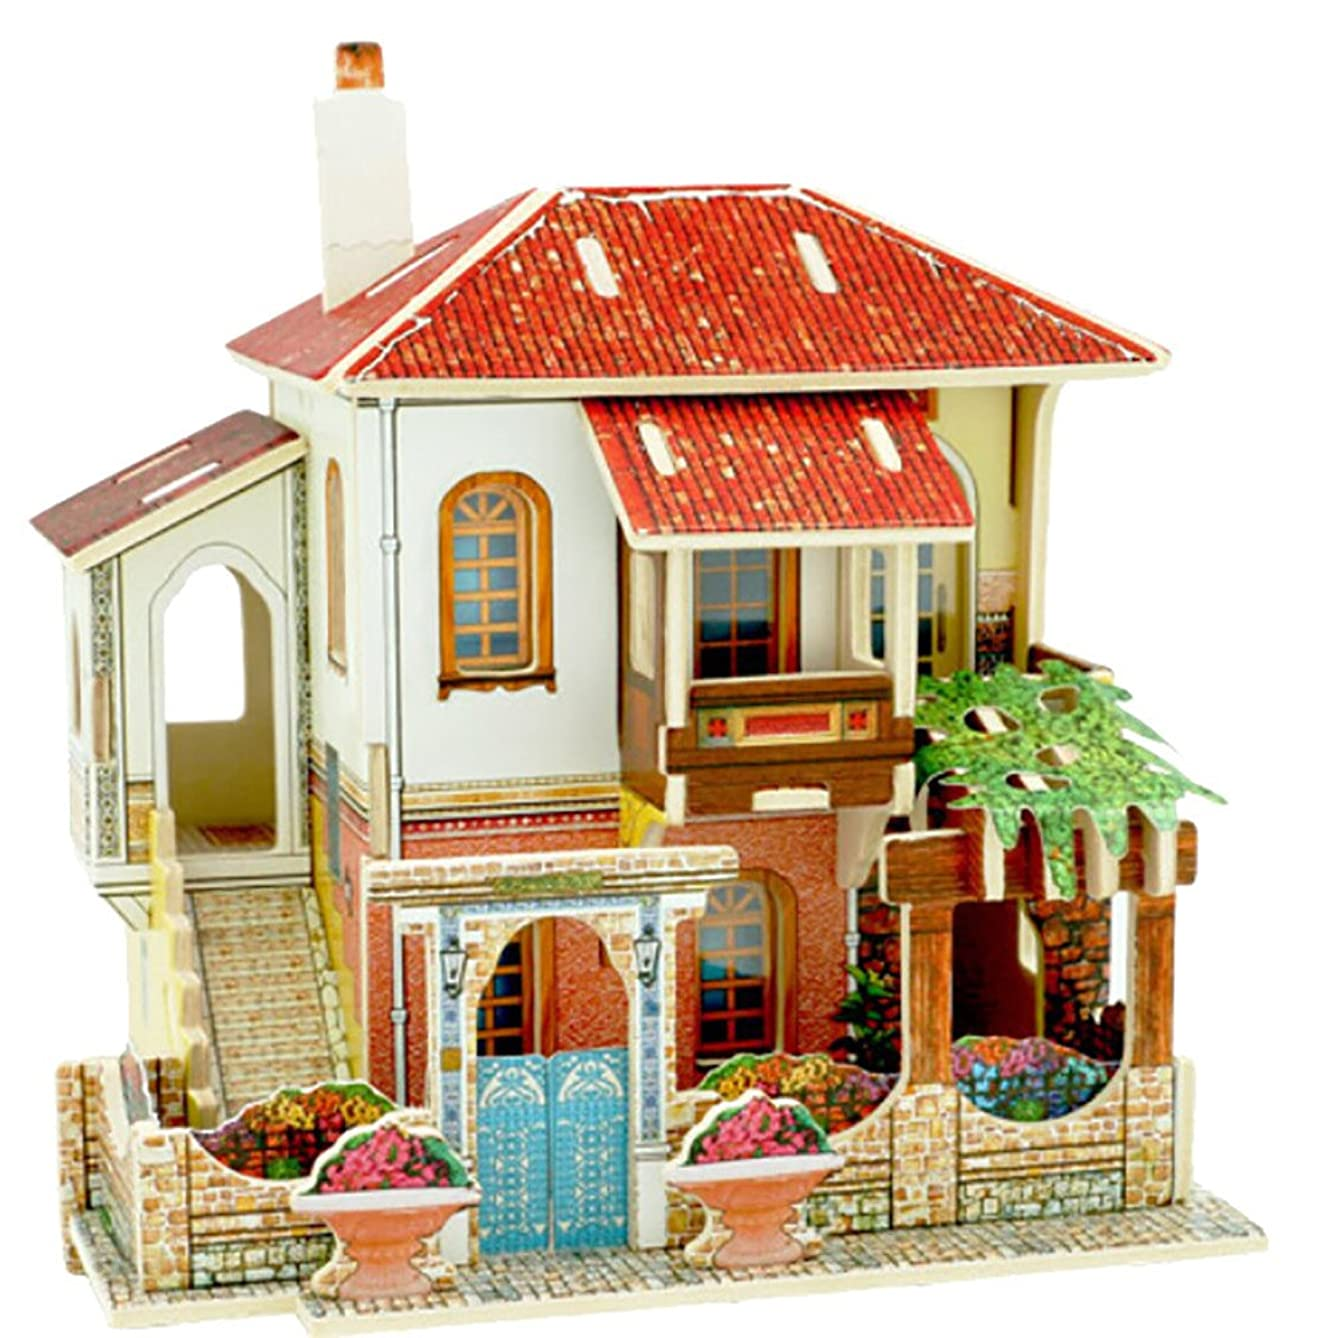 Gbell  Architectural House Building Model Kits 3D Puzzle,DIY Wooden Turkish Villa Models Handmade Playhouse Handcraft Miniature Doll Theater Creative Assembly Dollhouse Edudational Toys for Toddlers